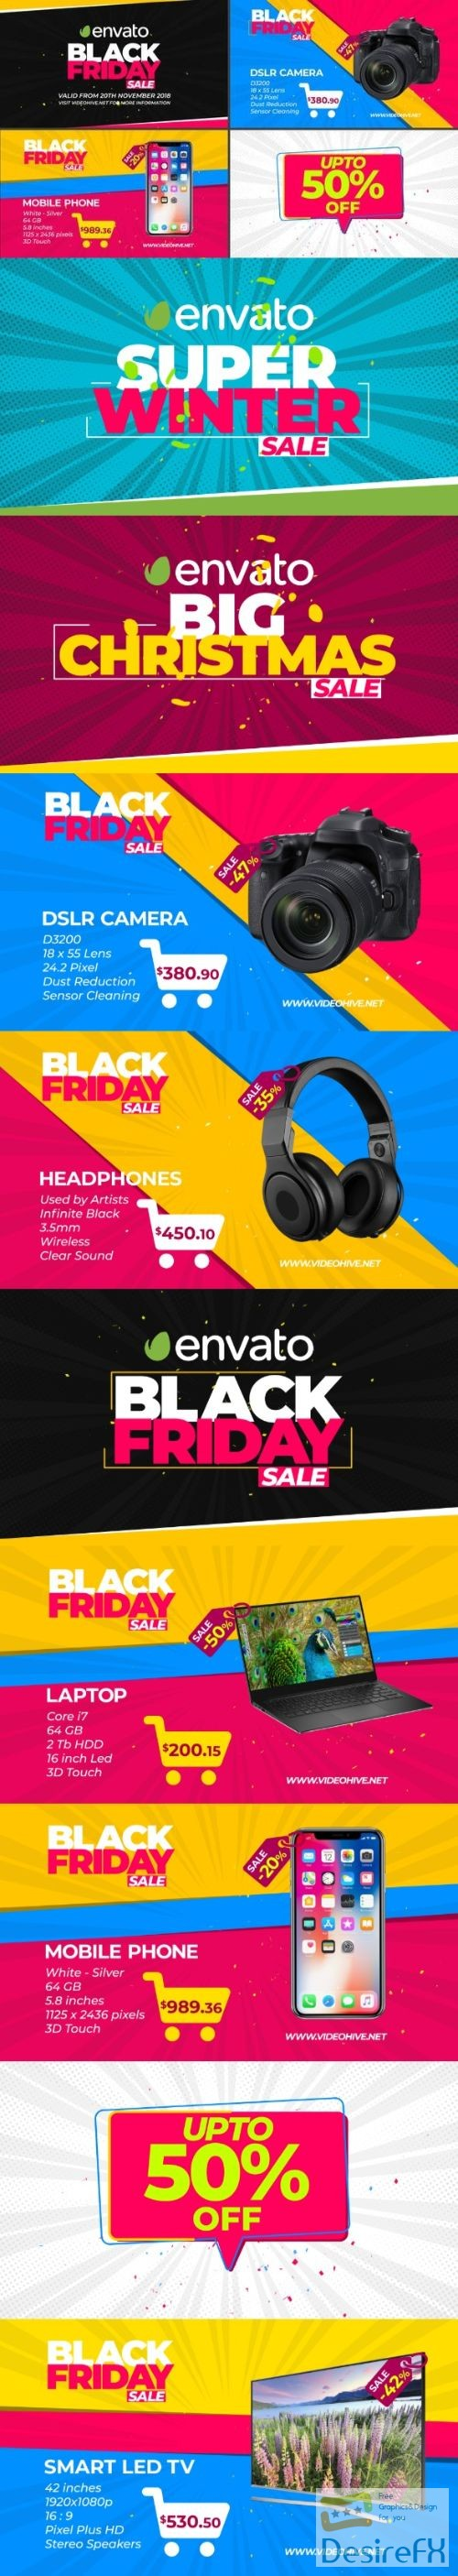 after-effects-projects - Videohive Black Friday Sale Promo 22778888